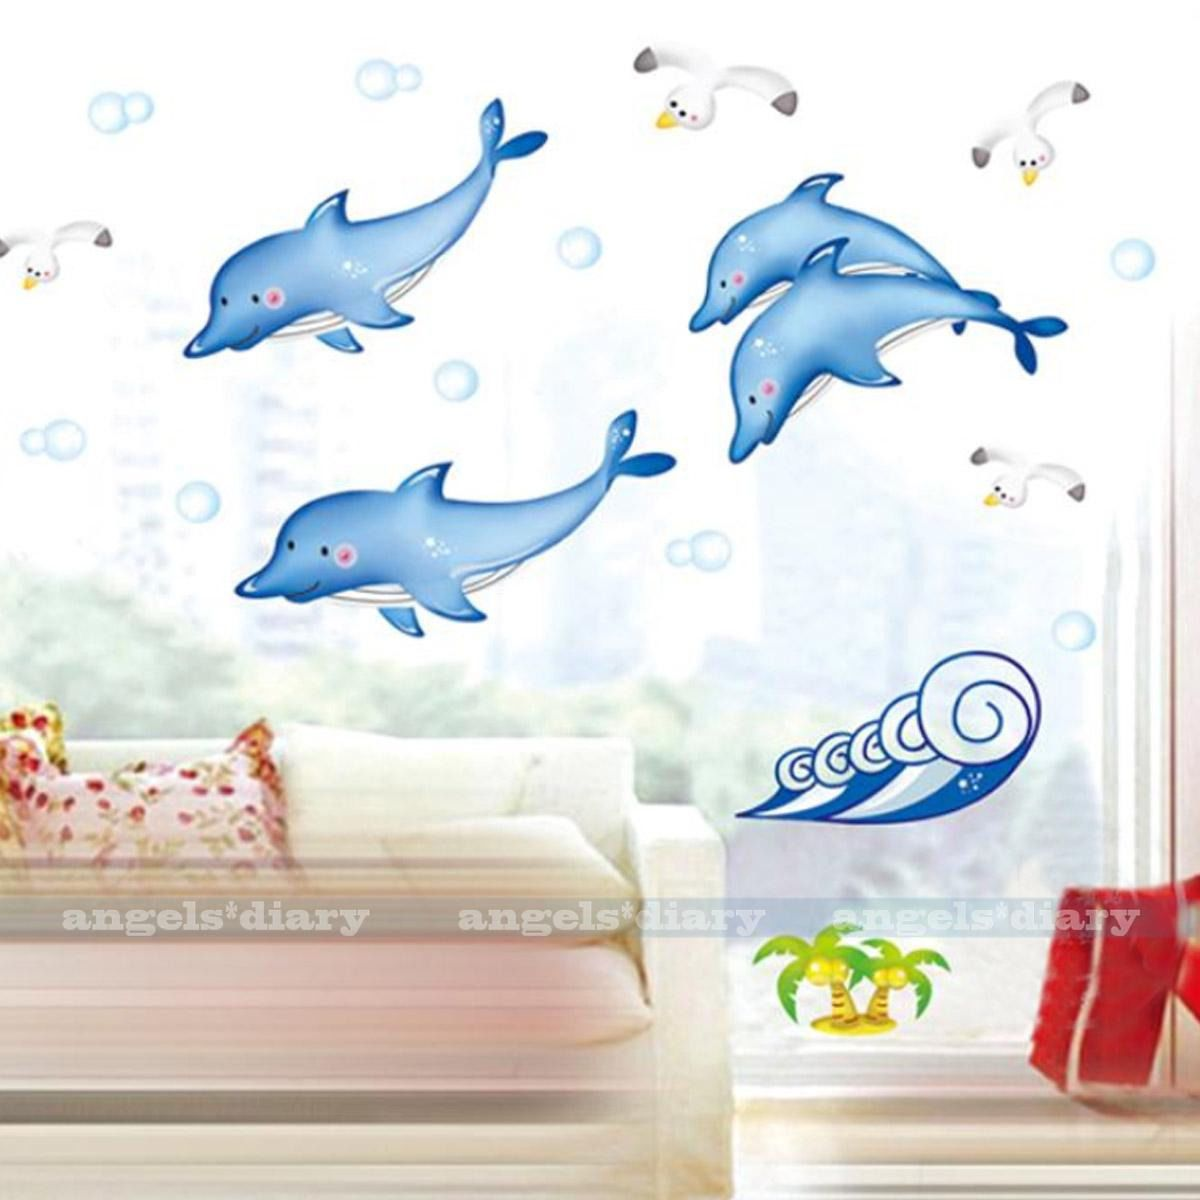 Details about dolphins seagulls wall sticker decal home kids room details about dolphins seagulls wall sticker decal home kids room decor removable wallpaper amipublicfo Image collections